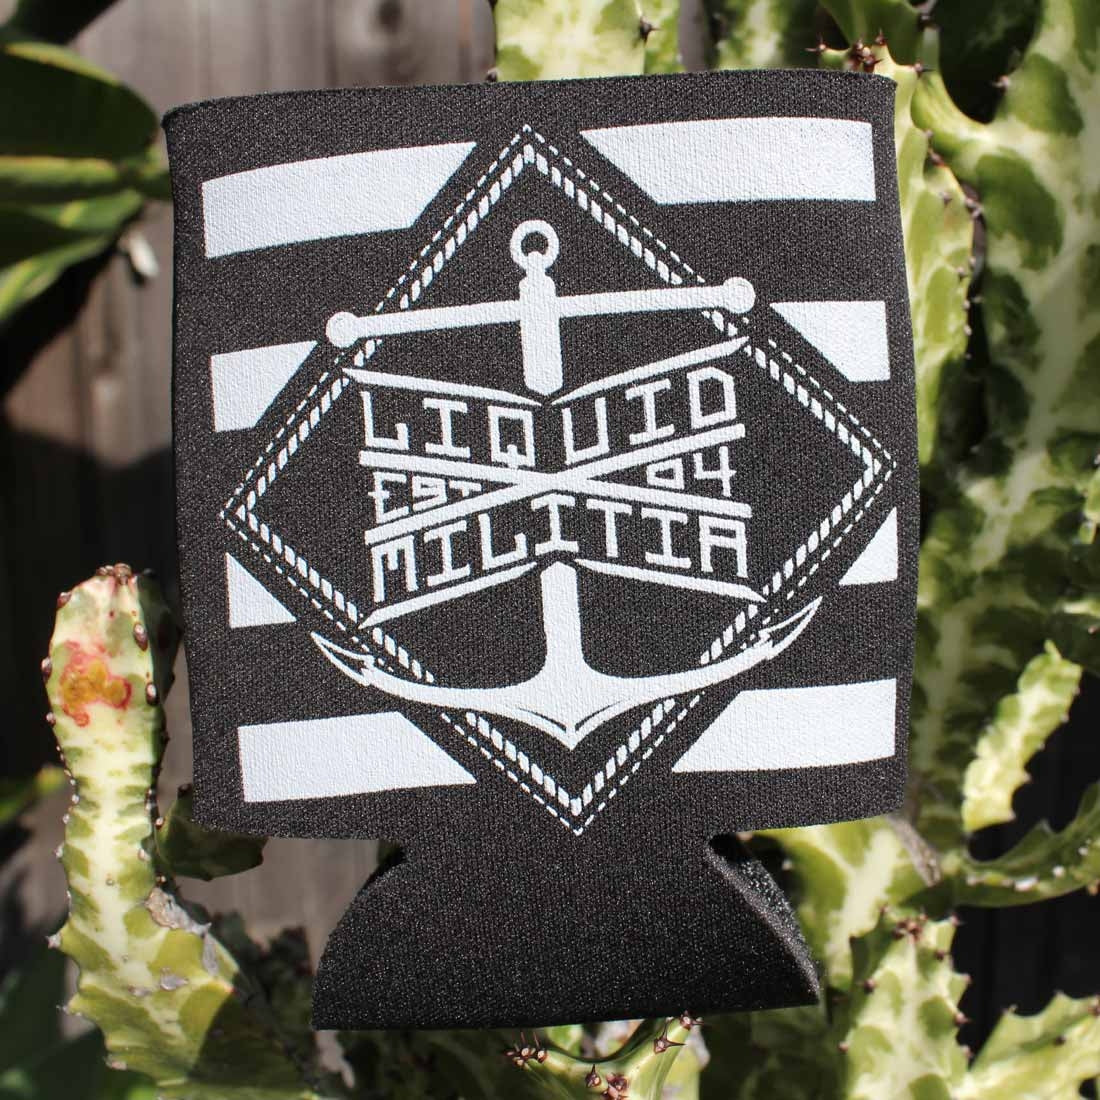 Liquid Militia black and white koozie